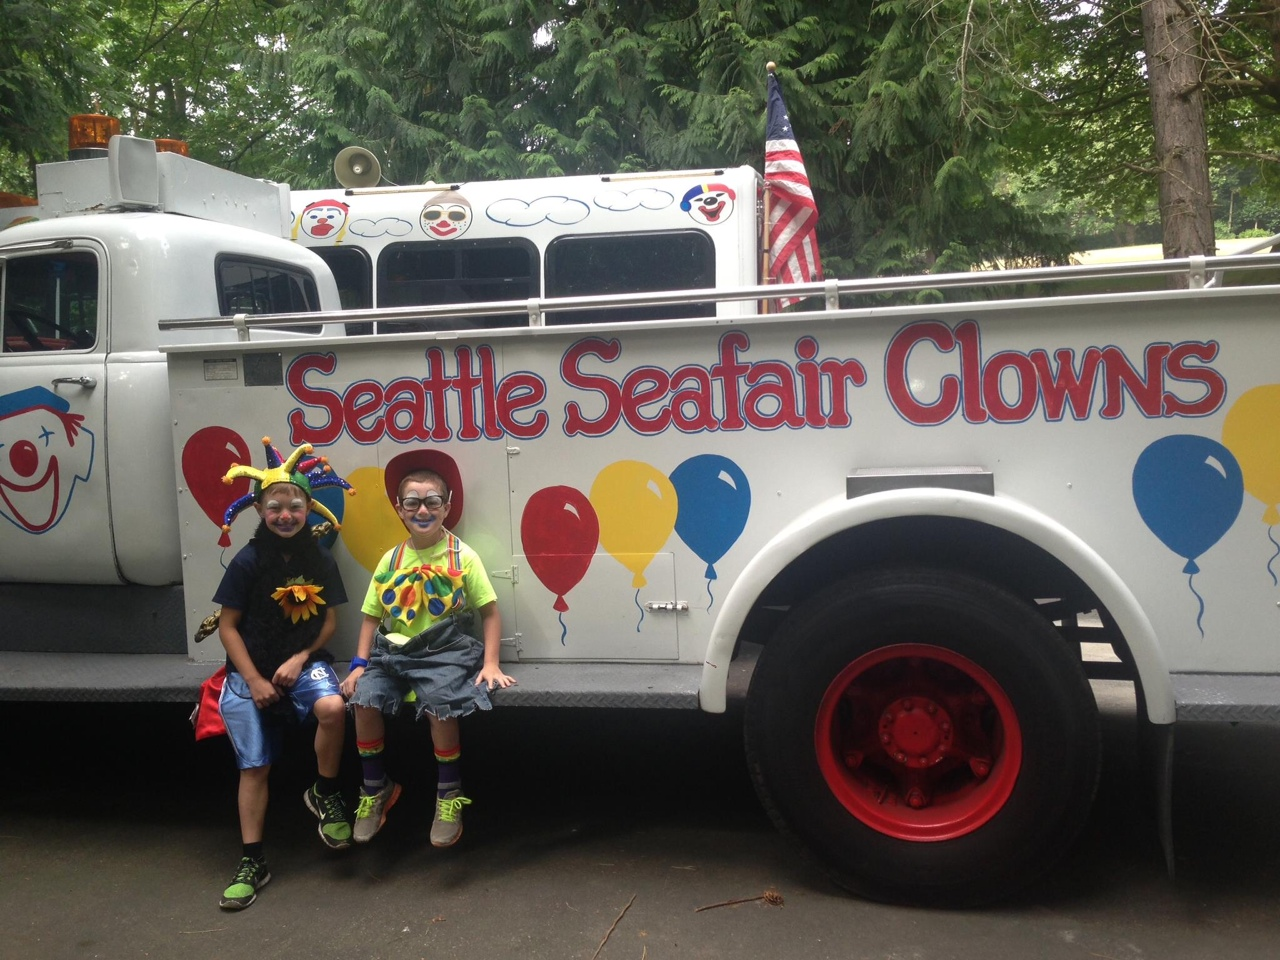 Wallingford Family Parade with the Seafair Clowns